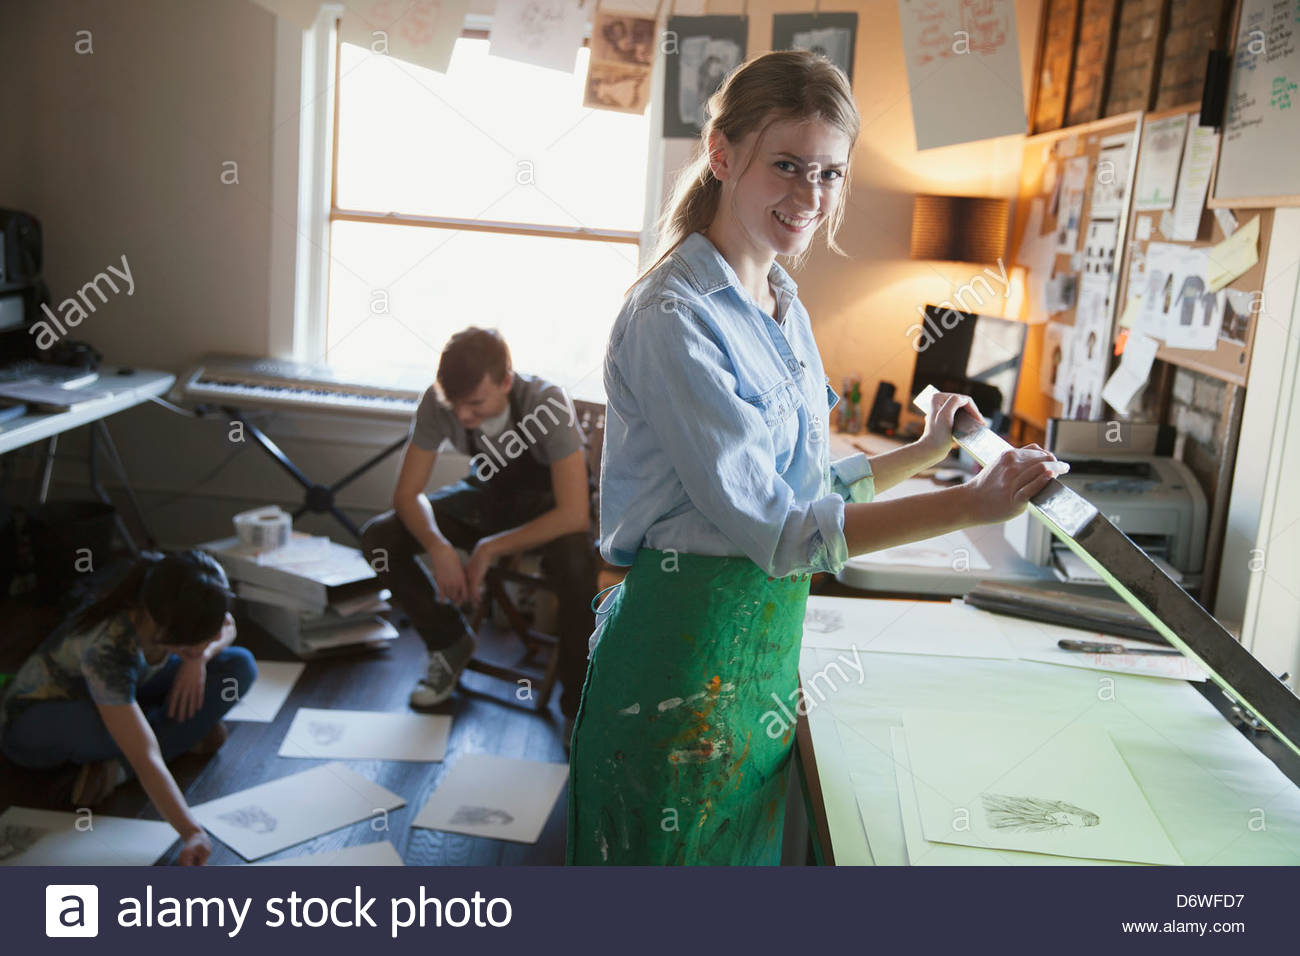 Portrait of female printmaker with colleagues working in background - Stock Image